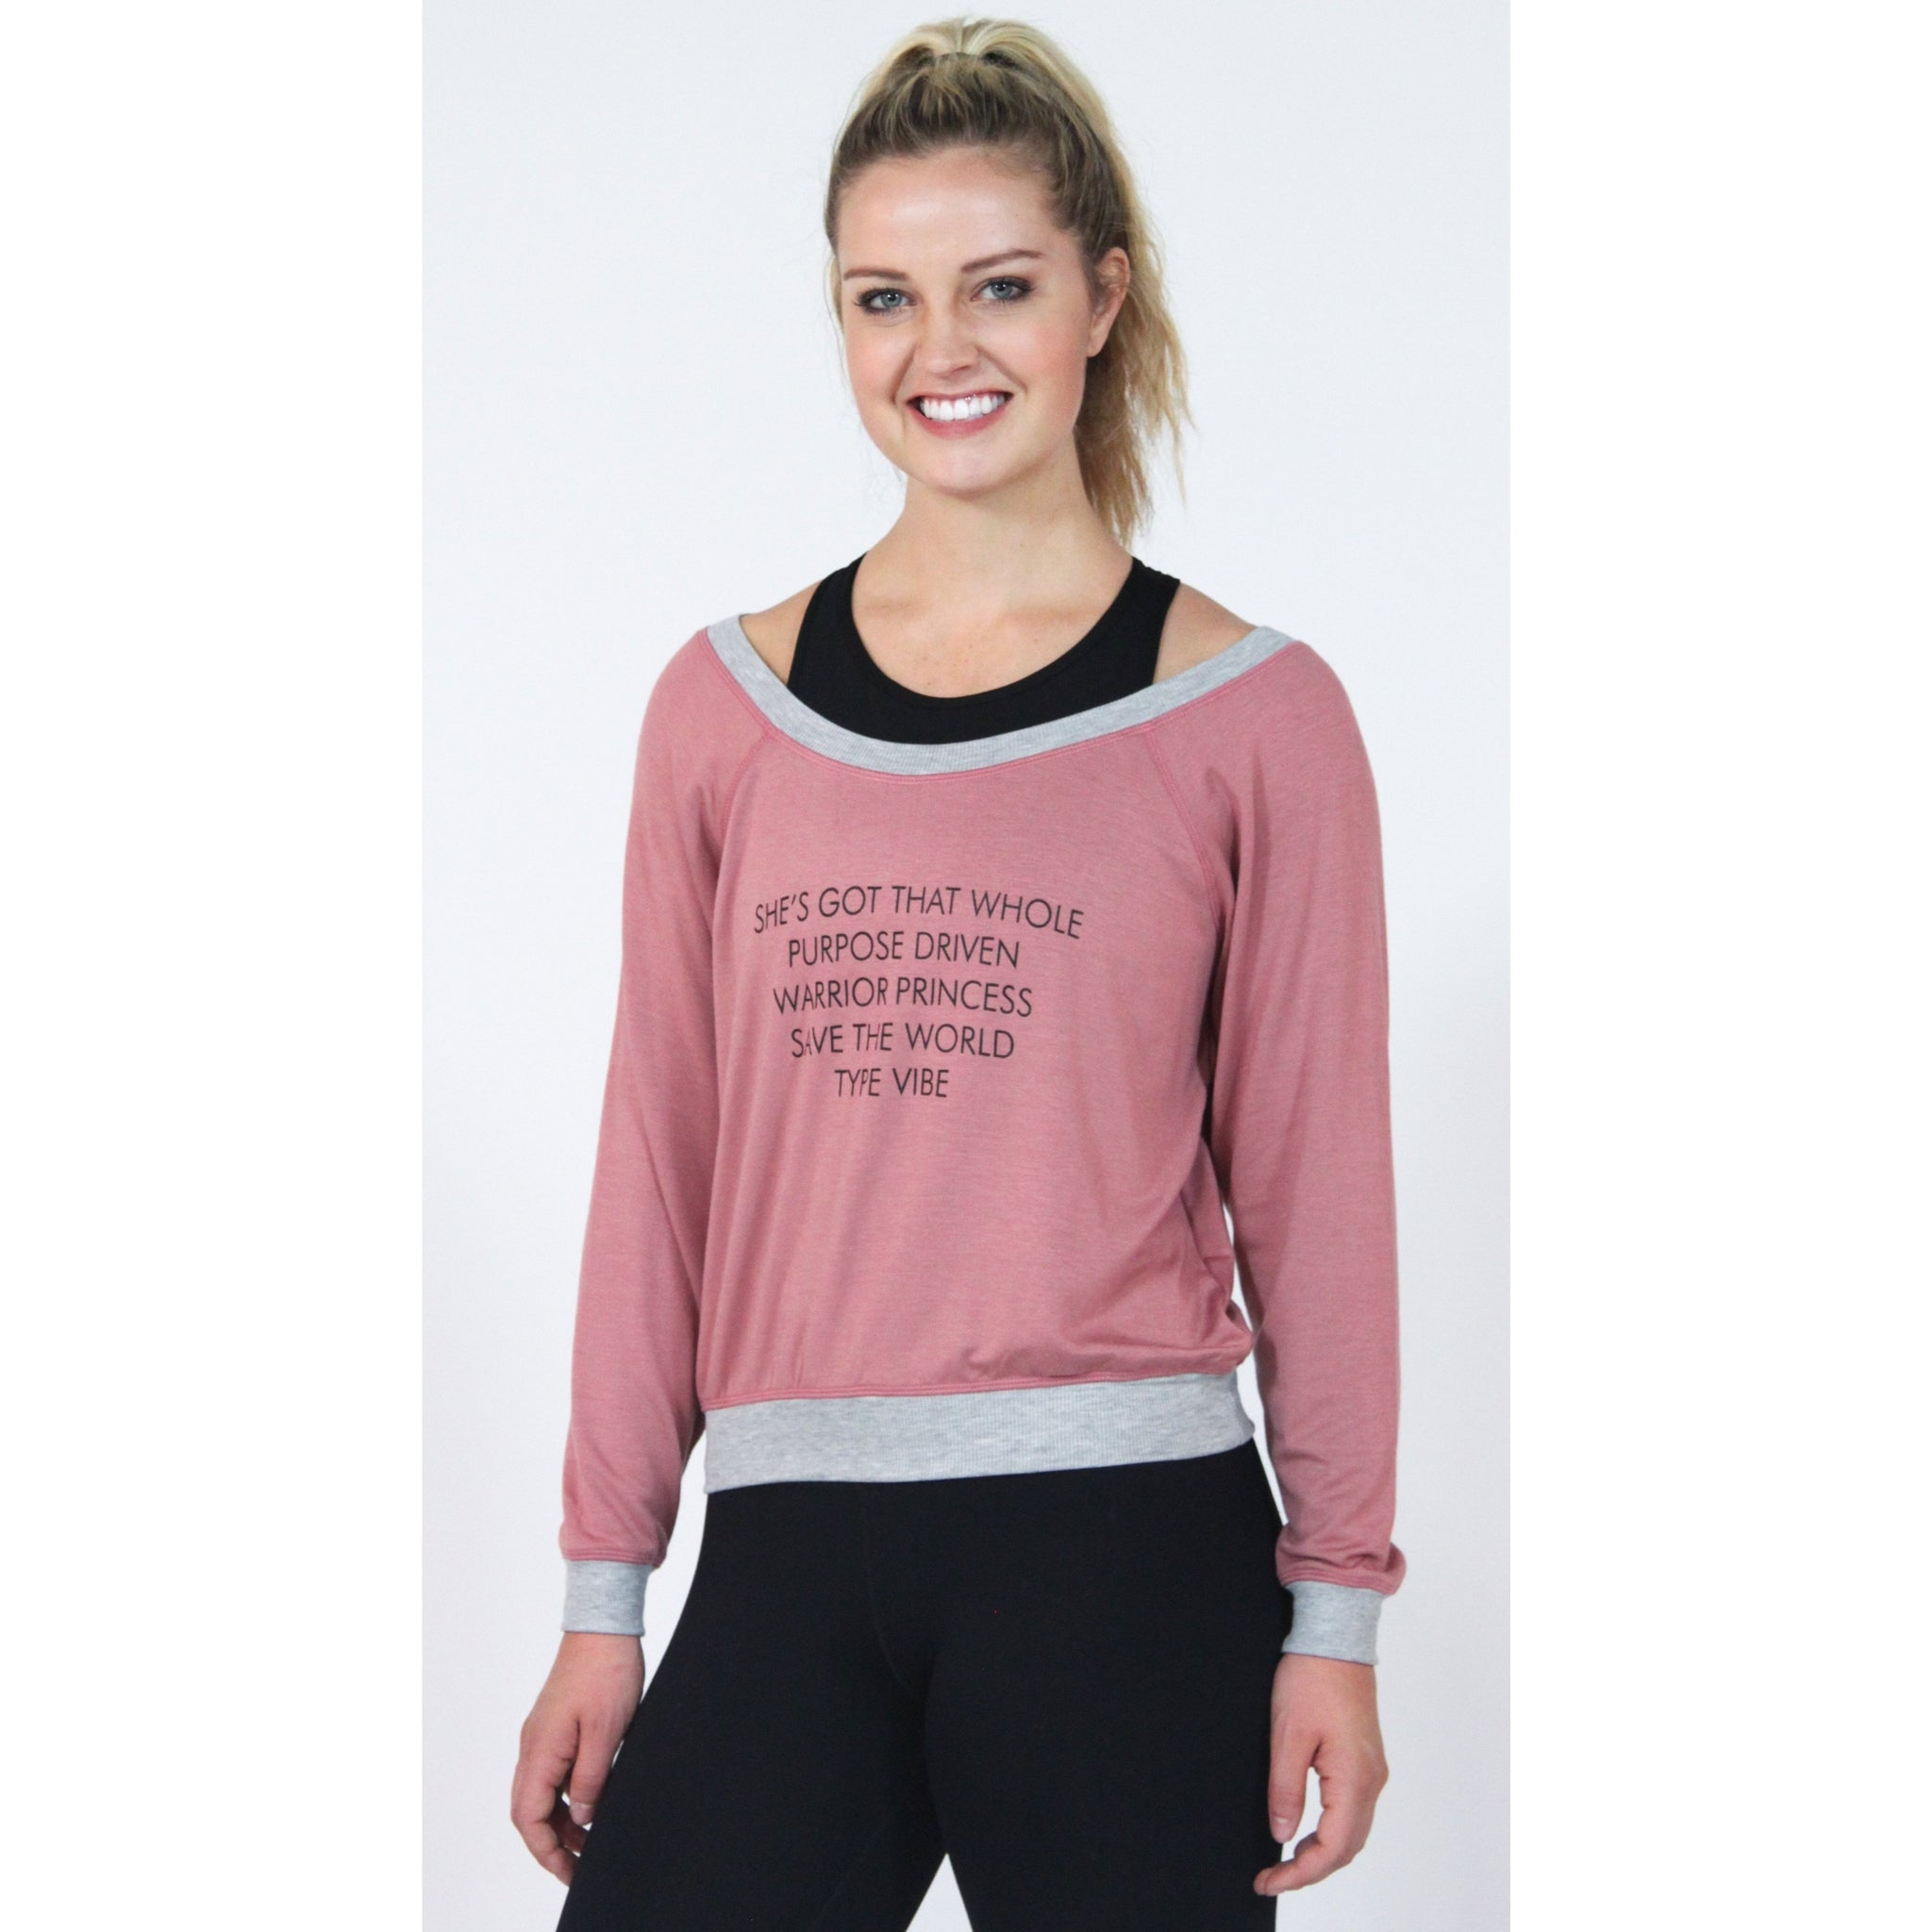 Warrior Princess Sweater - Burgundy Pink - Brooke Taylor Active